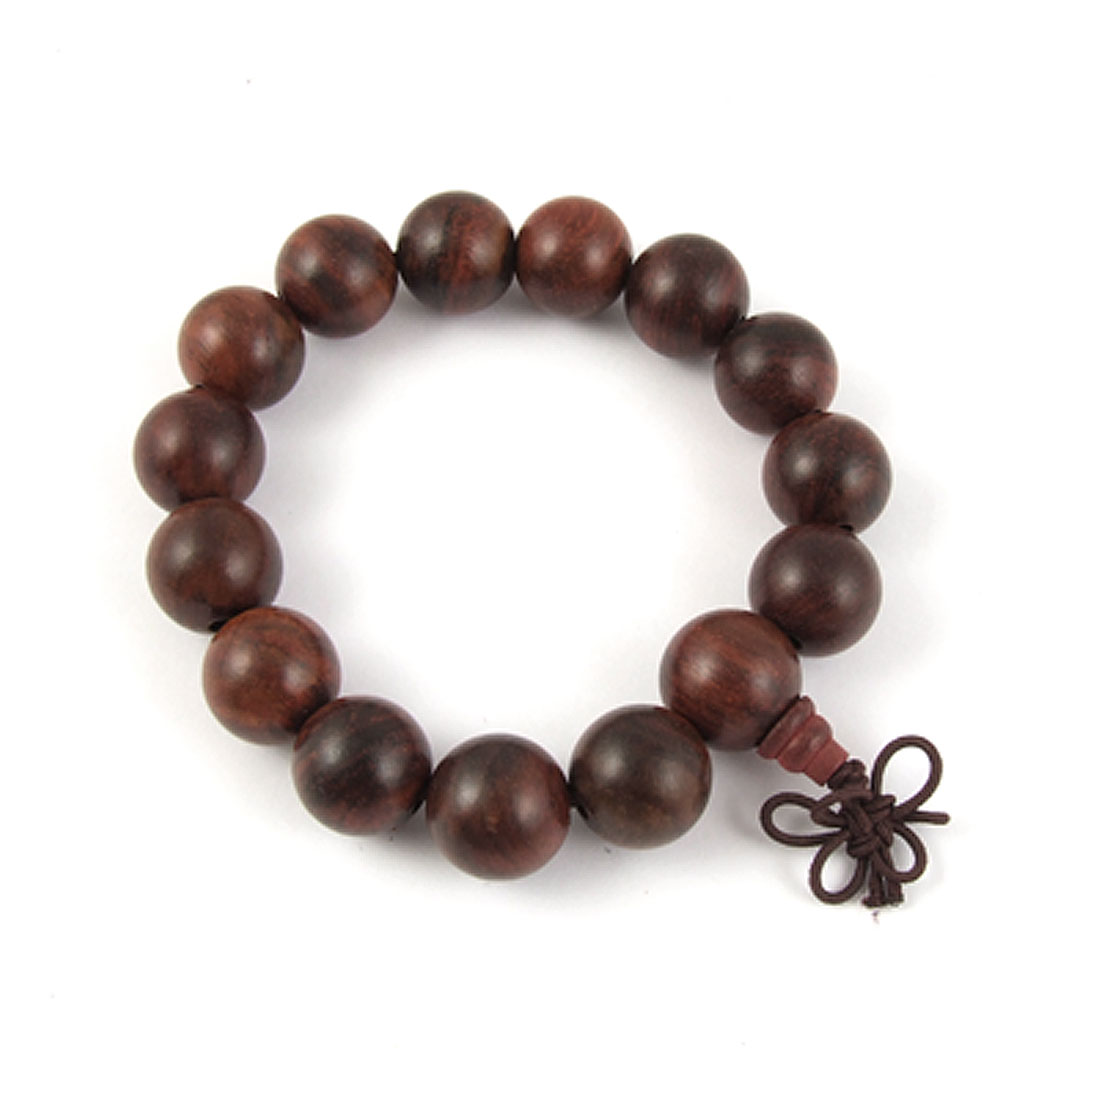 Brown Wood Round Beads Wrist Bracelet Ornament